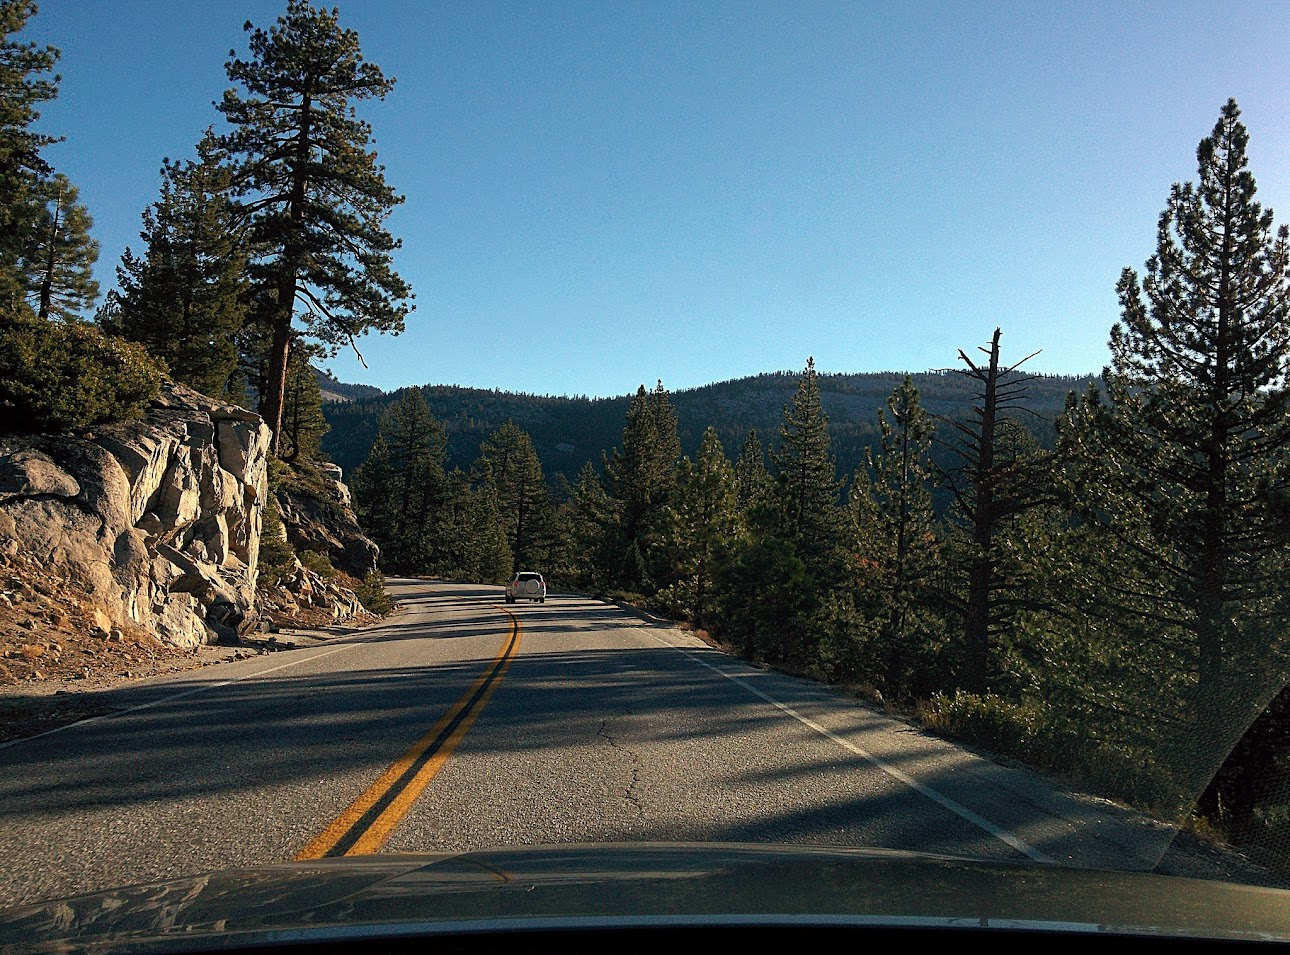 Valle de Yosemite, Tioga Road